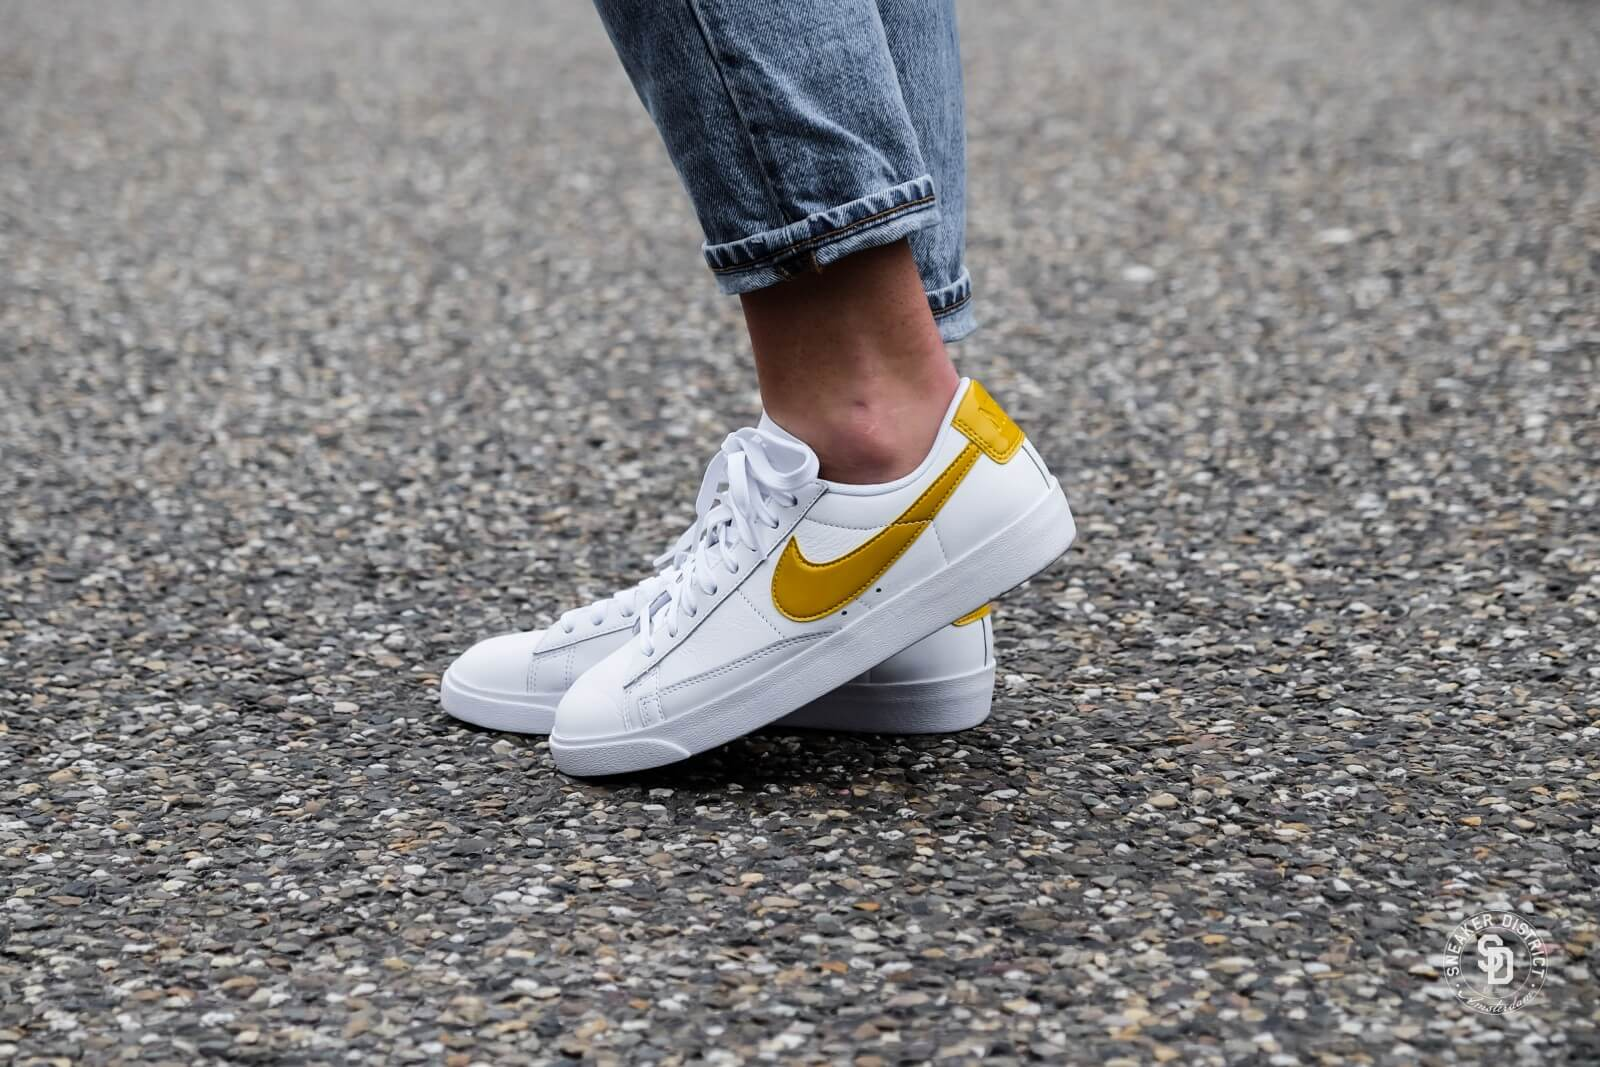 Nike Women's Blazer Low LE White/Mineral Yellow